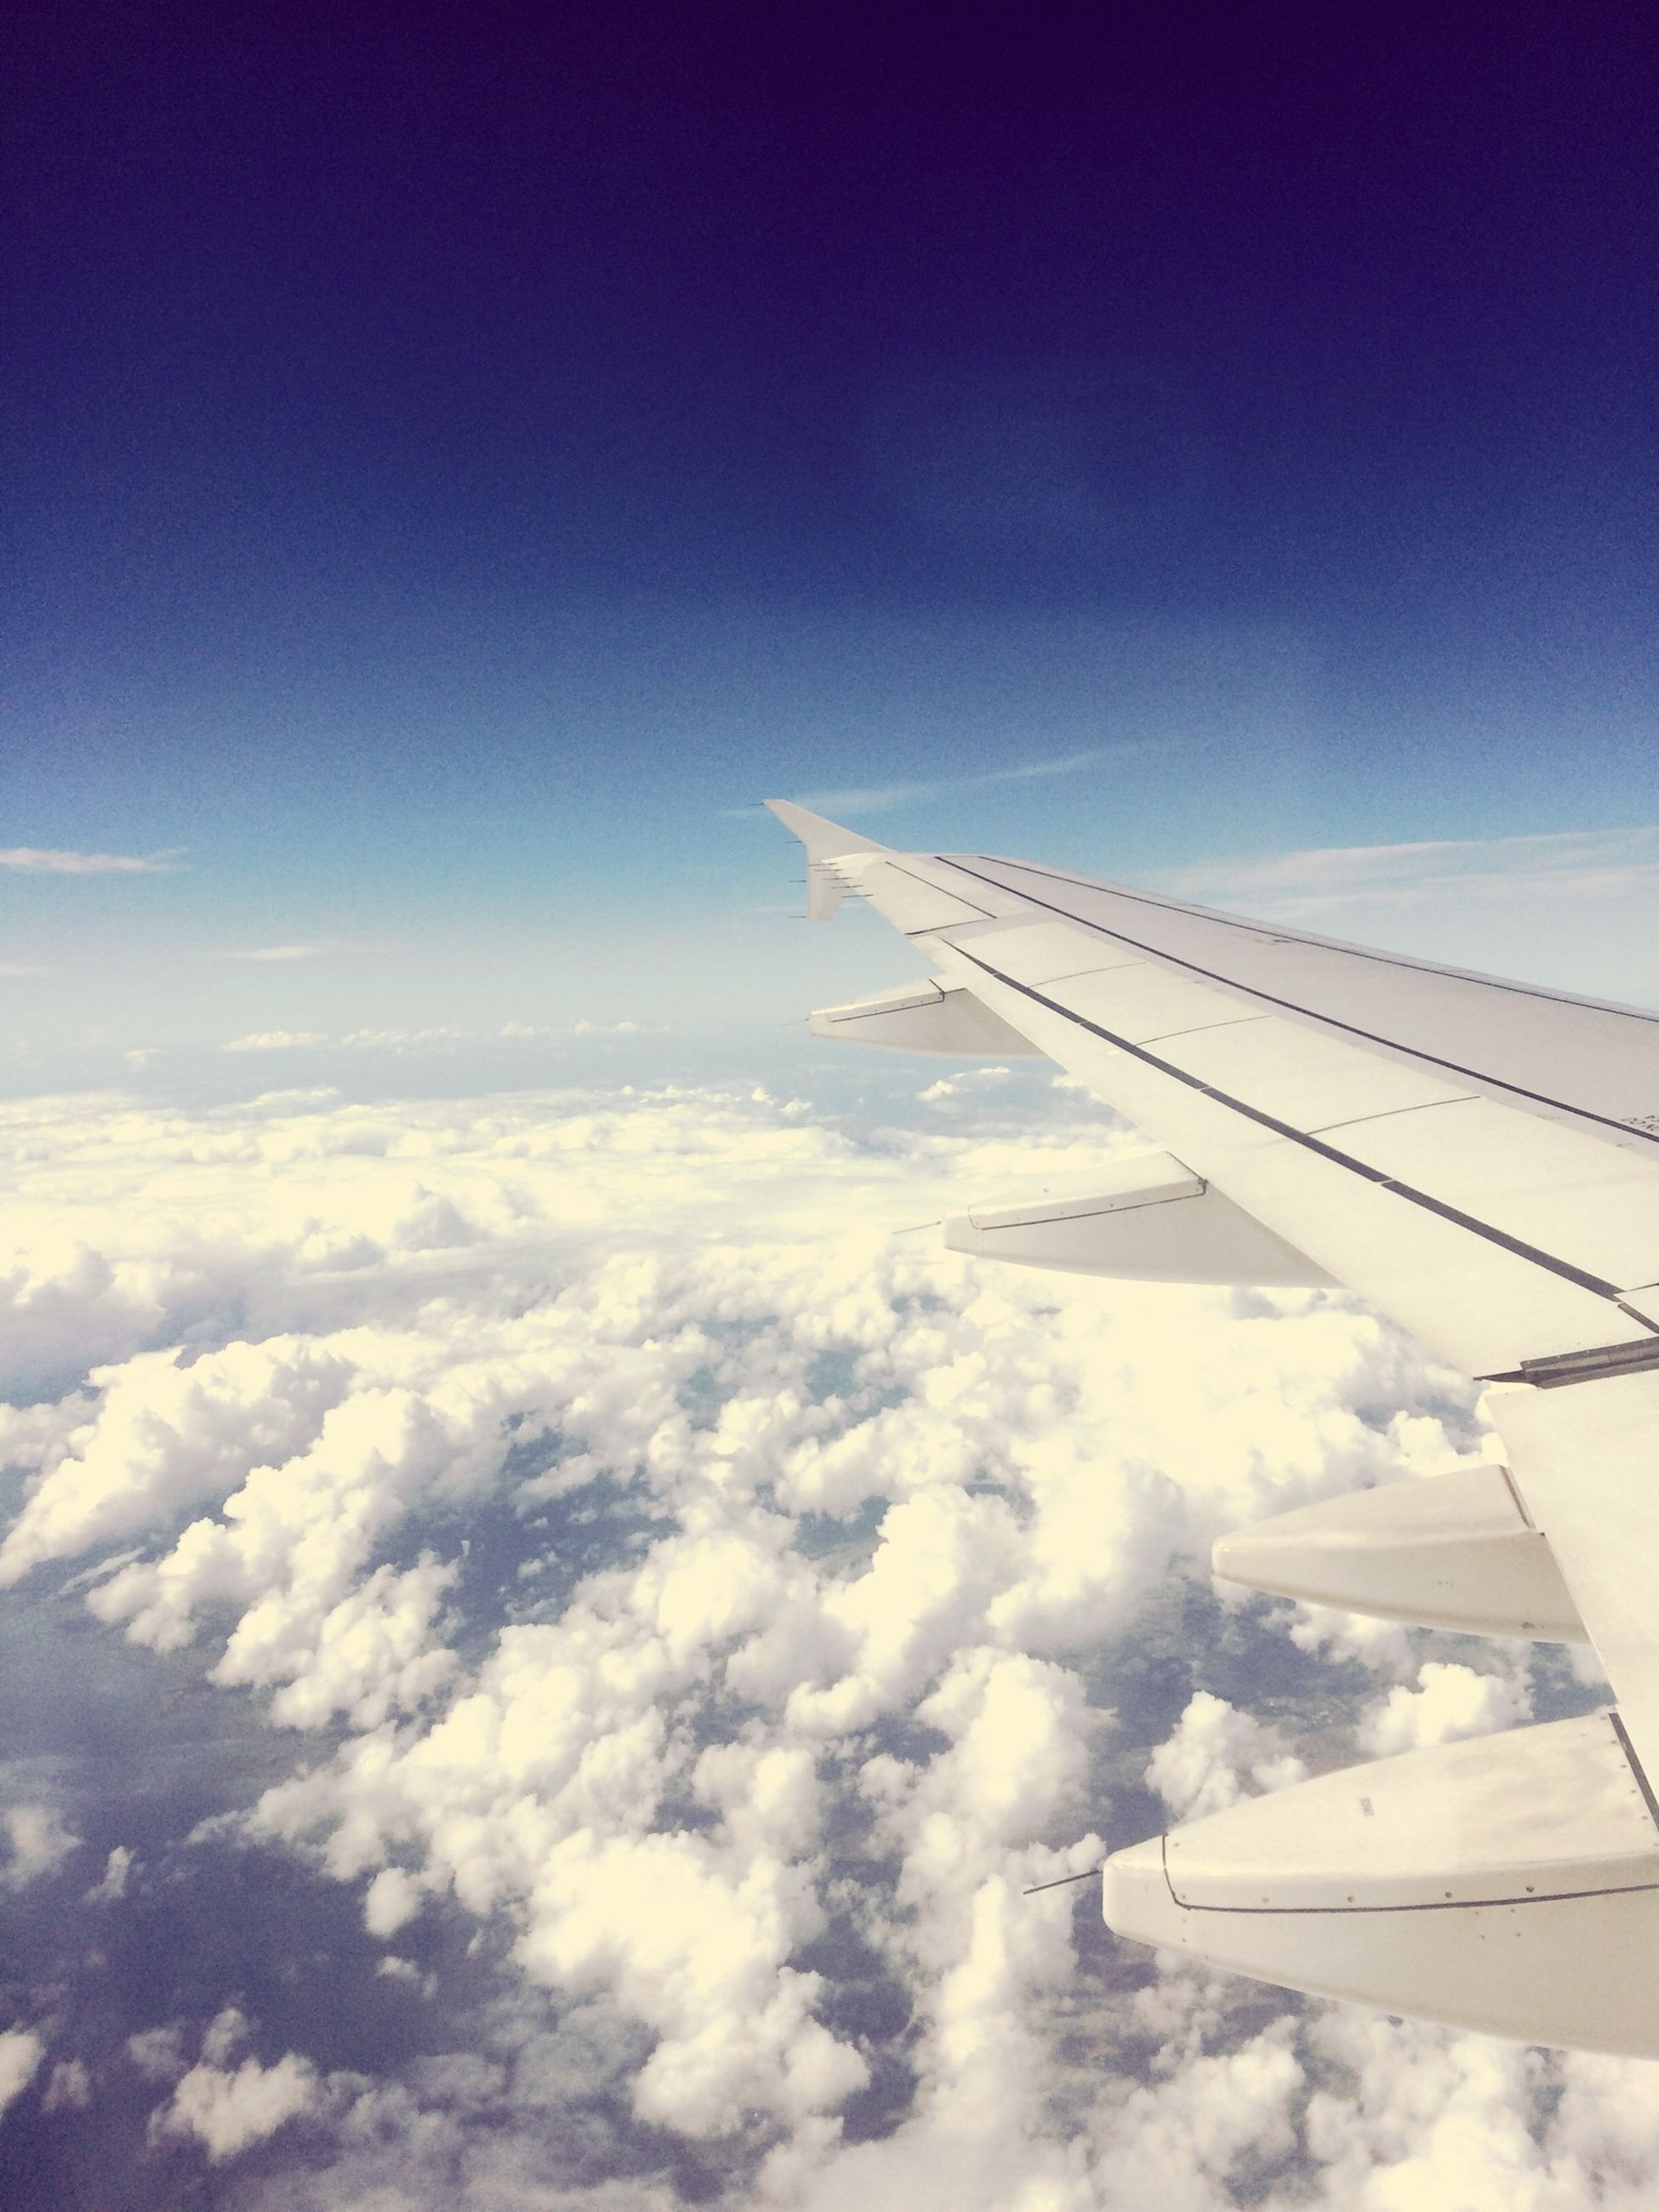 airplane, flying, air vehicle, aircraft wing, transportation, mode of transport, sky, part of, mid-air, aerial view, blue, cropped, cloud - sky, on the move, airplane wing, travel, journey, public transportation, scenics, cloud